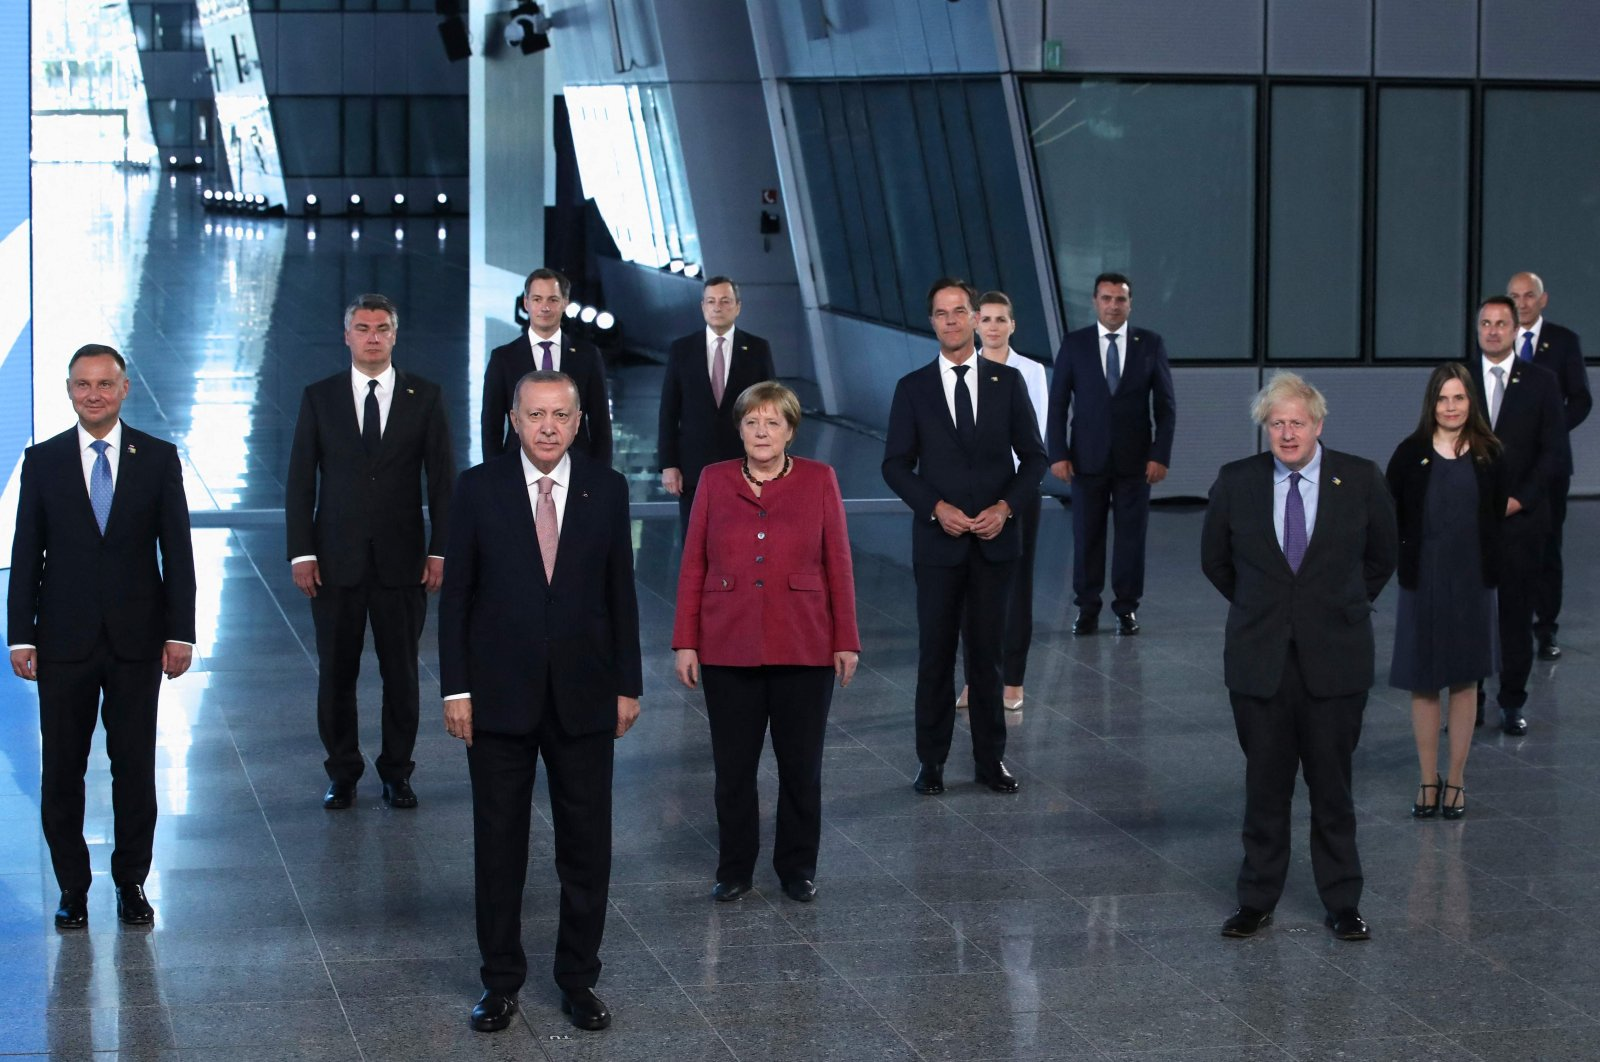 President Recep Tayyip Erdoğan (3rd L) looks on next to German Chancellor Angela Merkel (C) and Britain's Prime Minister Boris Johnson (R) as NATO heads of the states and governments pose for a photo prior to a NATO summit at the North Atlantic Treaty Organization (NATO) headquarters in Brussels, June 14, 2021. (AFP Photo)